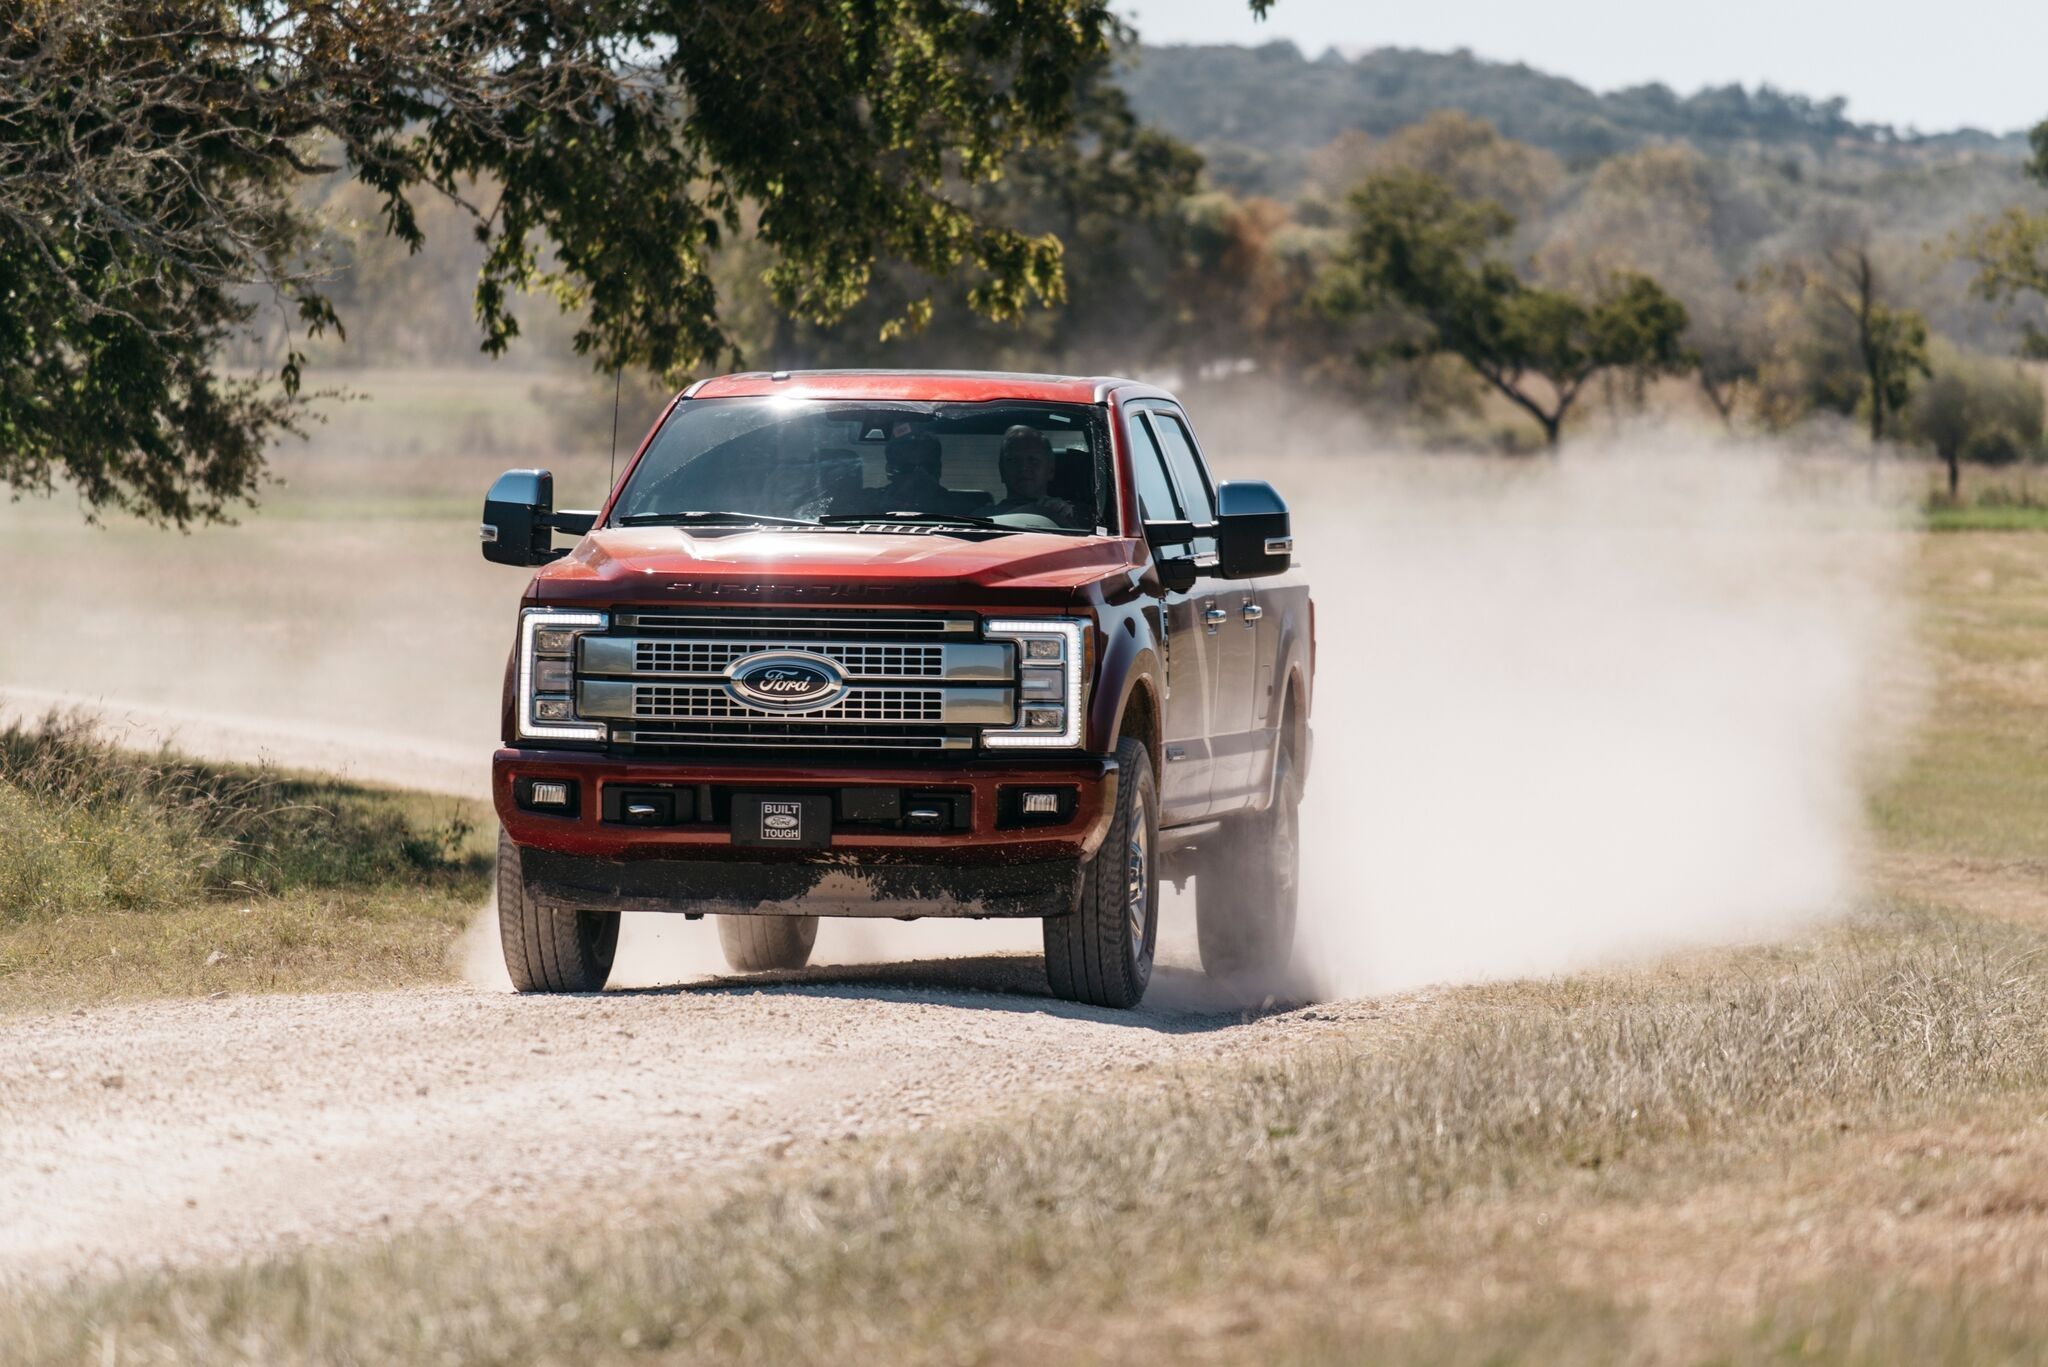 Amid fierce competition, Ford's 2017 Super Duty named 'Truck of Texas'